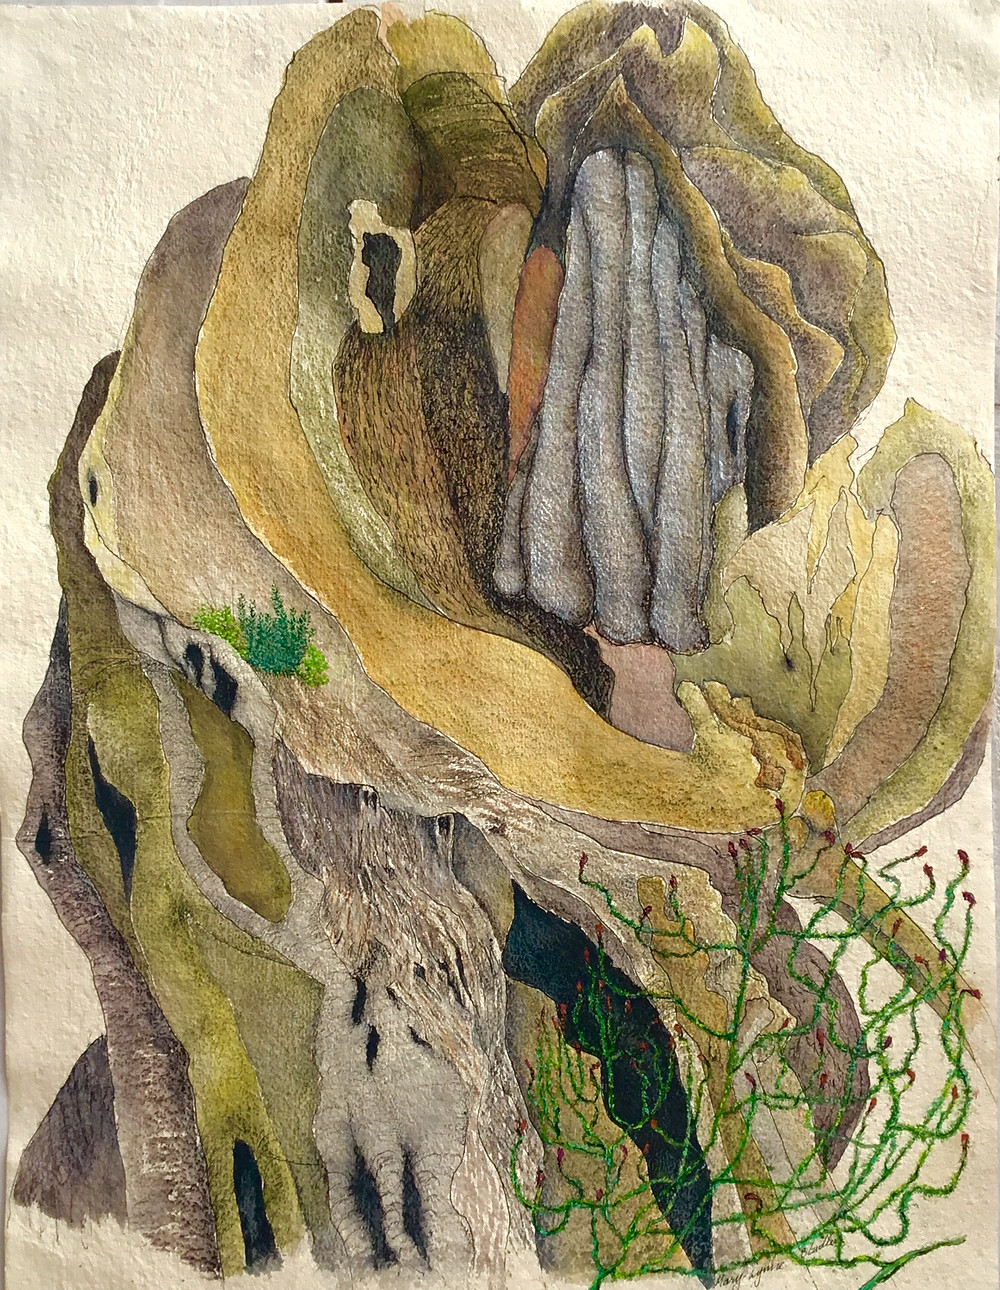 Fine art drawing in yellow ochre, yellows, greens, greys, red ochre and light browns. Interesting and varied  textures created using the rough surface of the paper, as well as finely drawn in pen and ink.